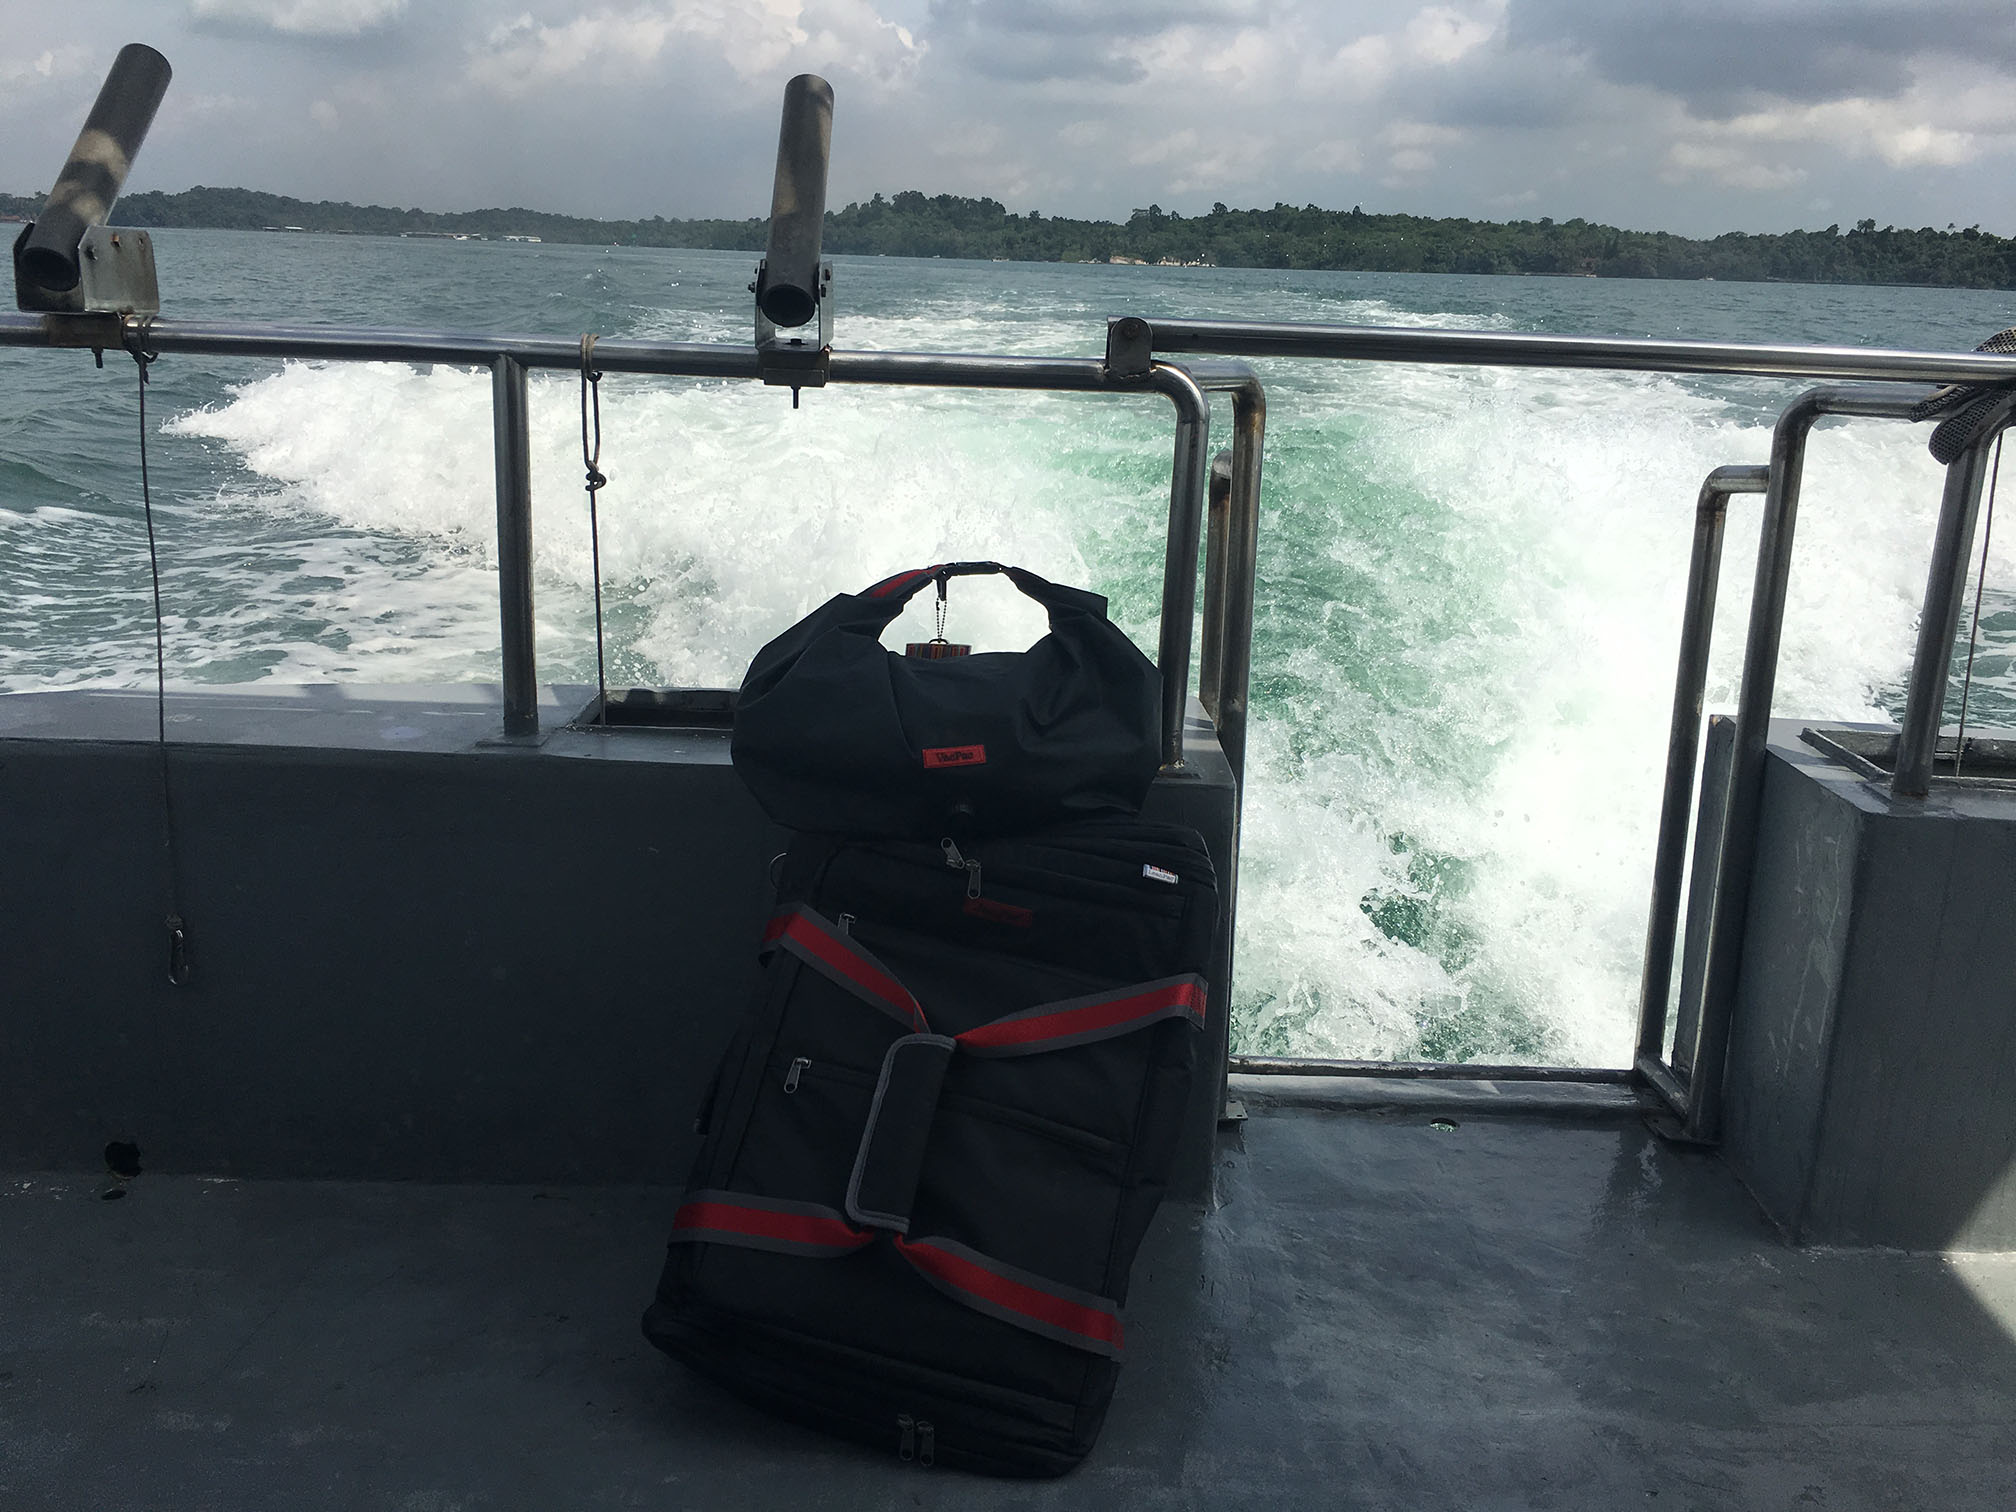 Love our JamPac®, the travel backpack and the VacPac, a versatile dry/wet vacuum fun bag. Traveling as usual side by side! They're on vacation enjoying a leisurely boat ride in SE Asia 😎